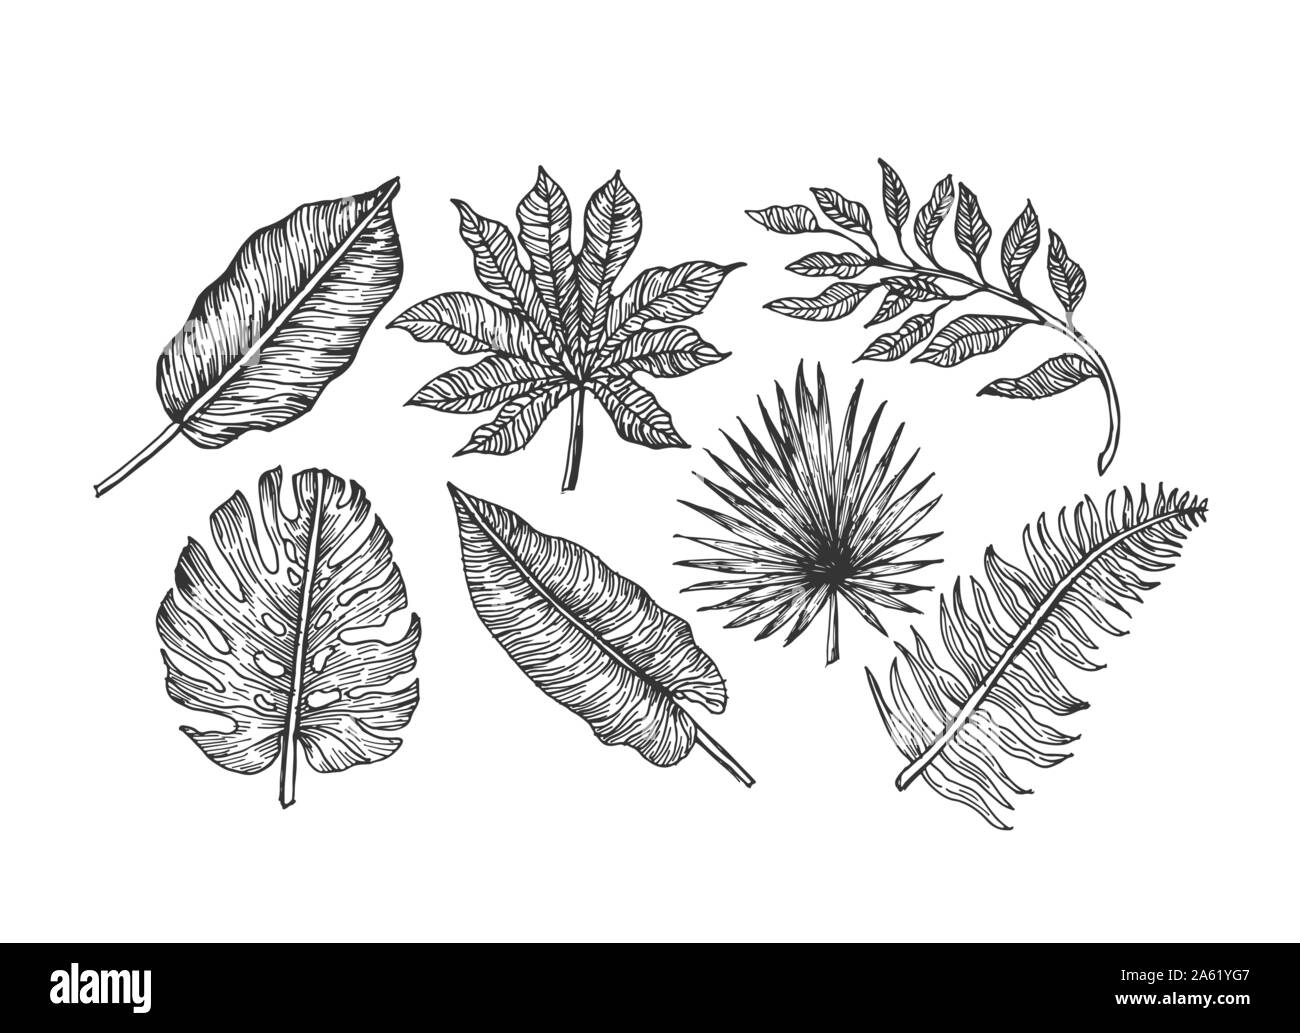 Tropical Leaves Collection Engraved Jungle Leaves Set Palm Leaves Vector Illustration Stock Vector Image Art Alamy Tropical monstera palm beach leaves flat style design elements. https www alamy com tropical leaves collection engraved jungle leaves set palm leaves vector illustration image330728503 html